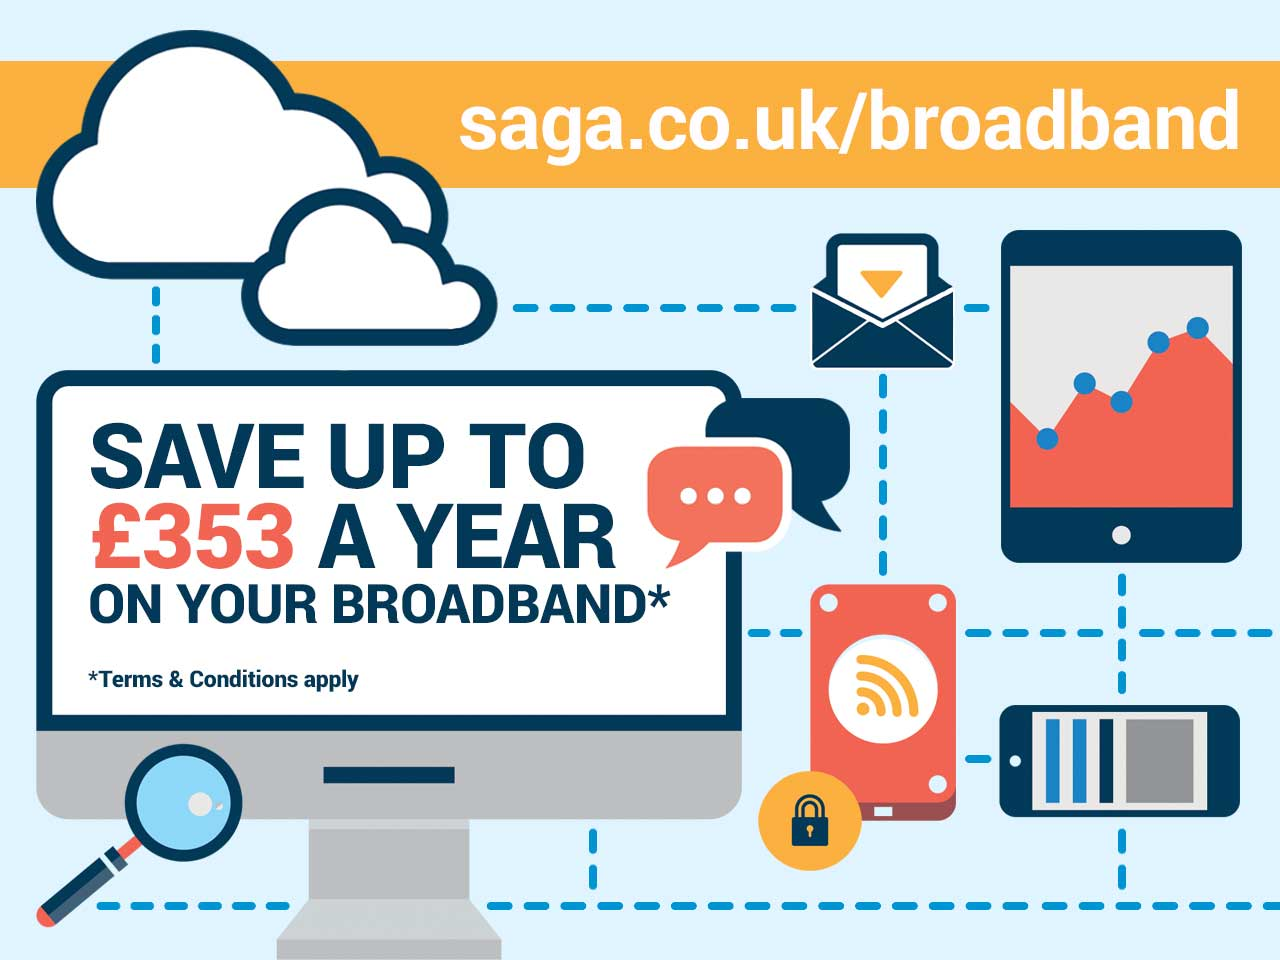 Save up to £353 a year on your broadband